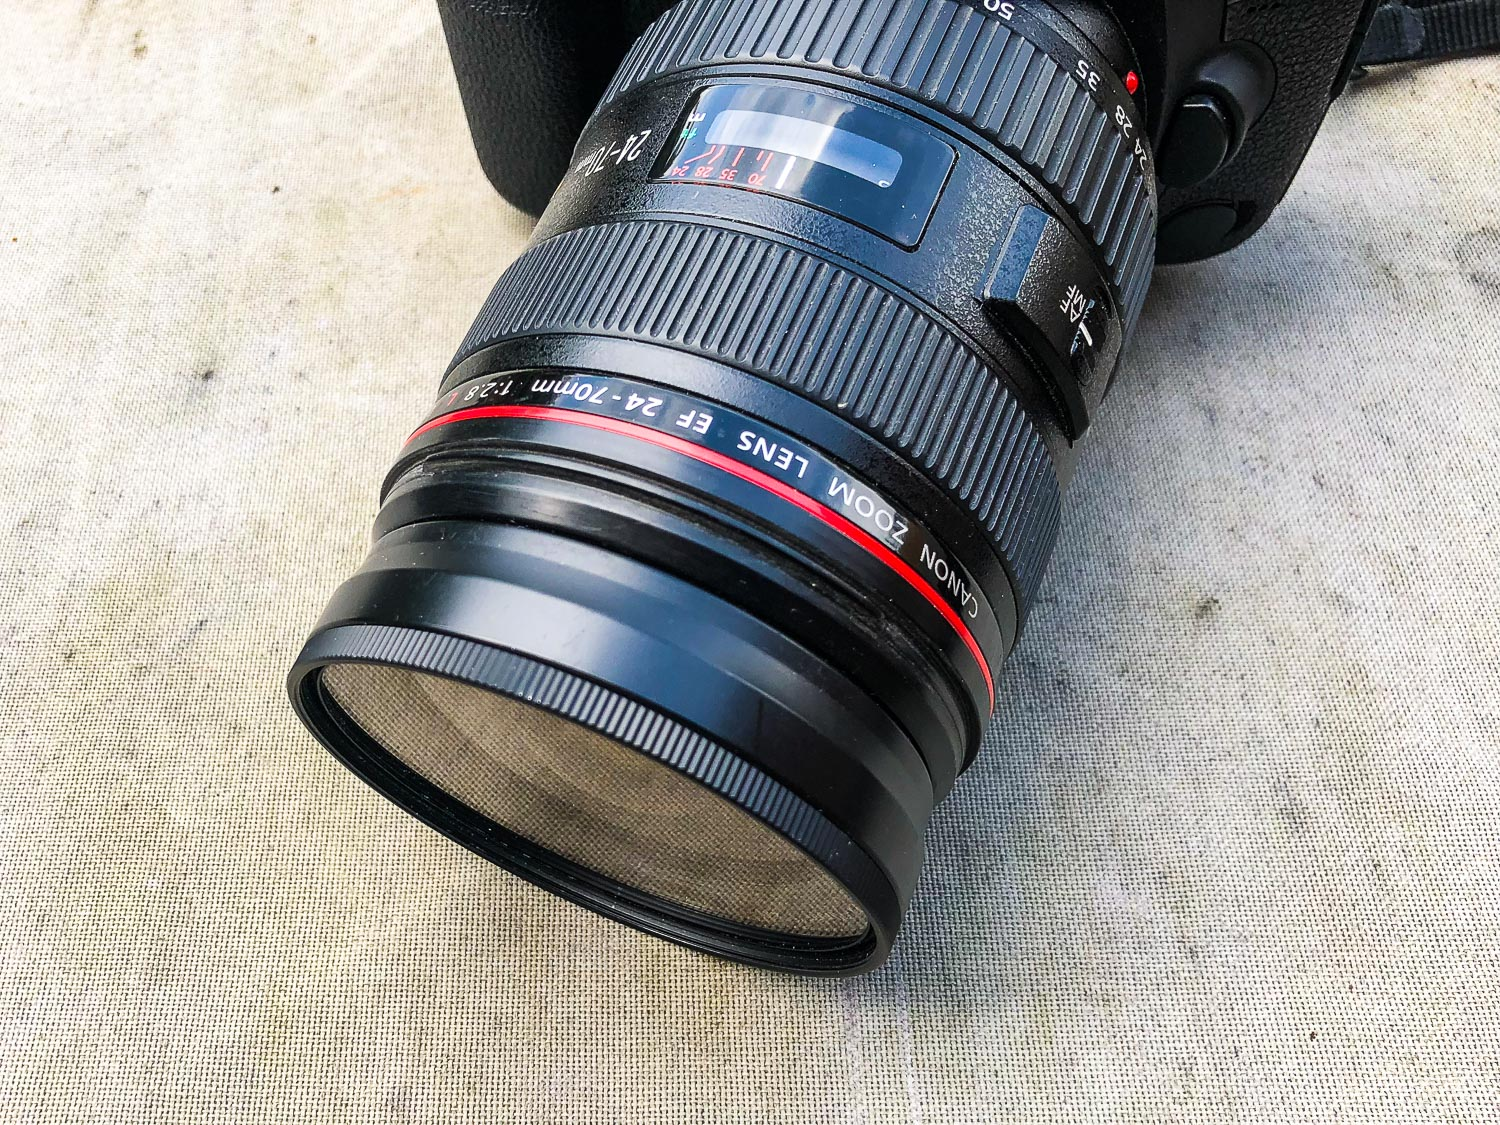 Canon L-series lens with a UV filter fitted on the front. The First 10 Things You Need to Buy After Your Camera for Travel Photography